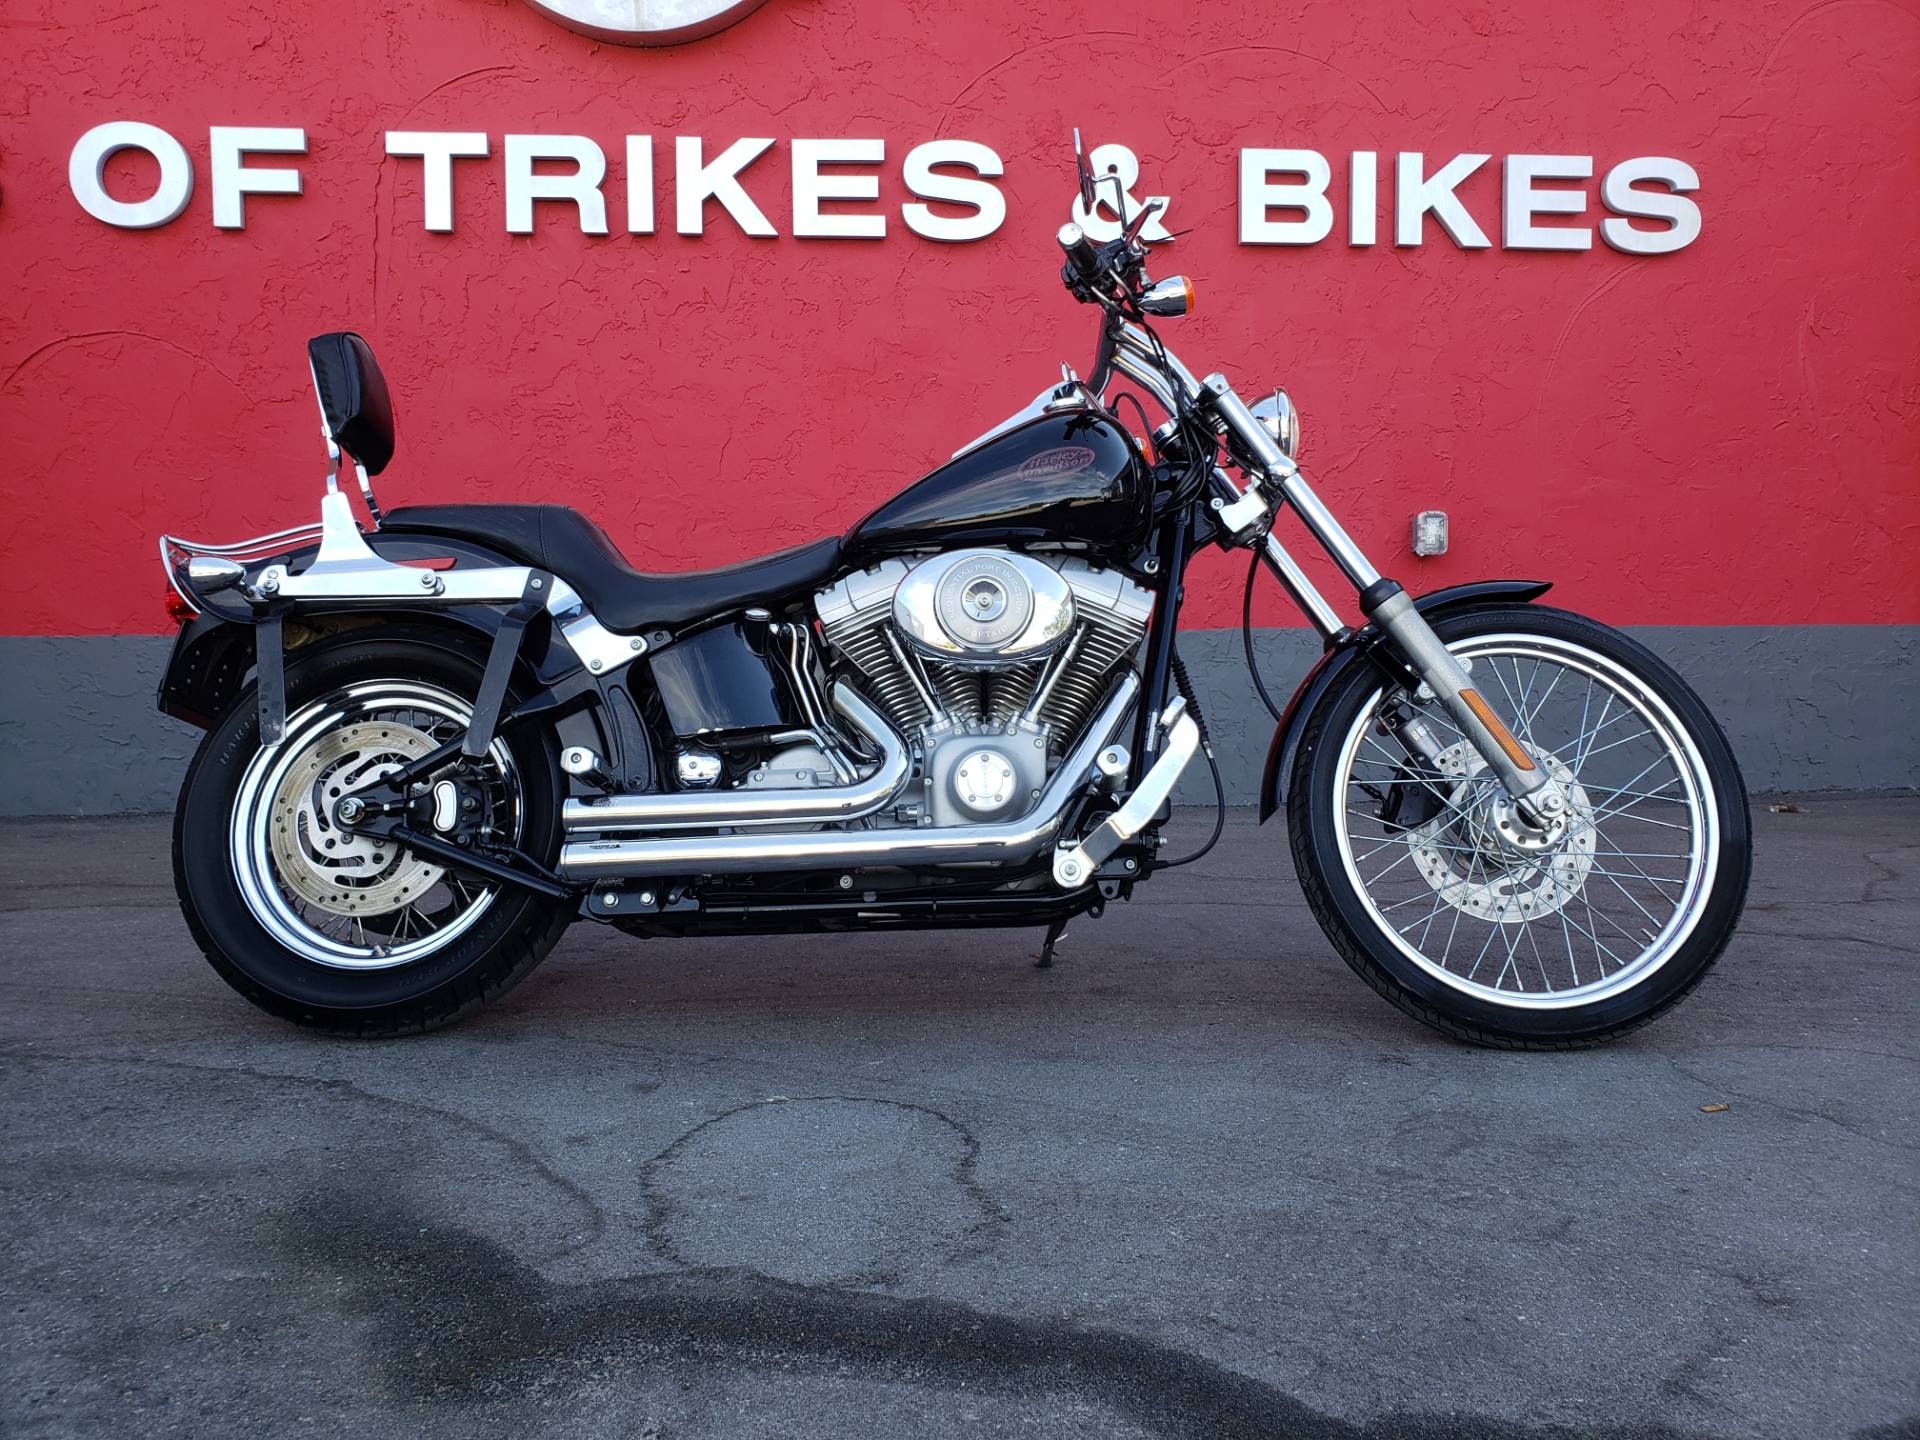 Used 2004 Harley Davidson Fxst Fxsti Softail Standard Motorcycles